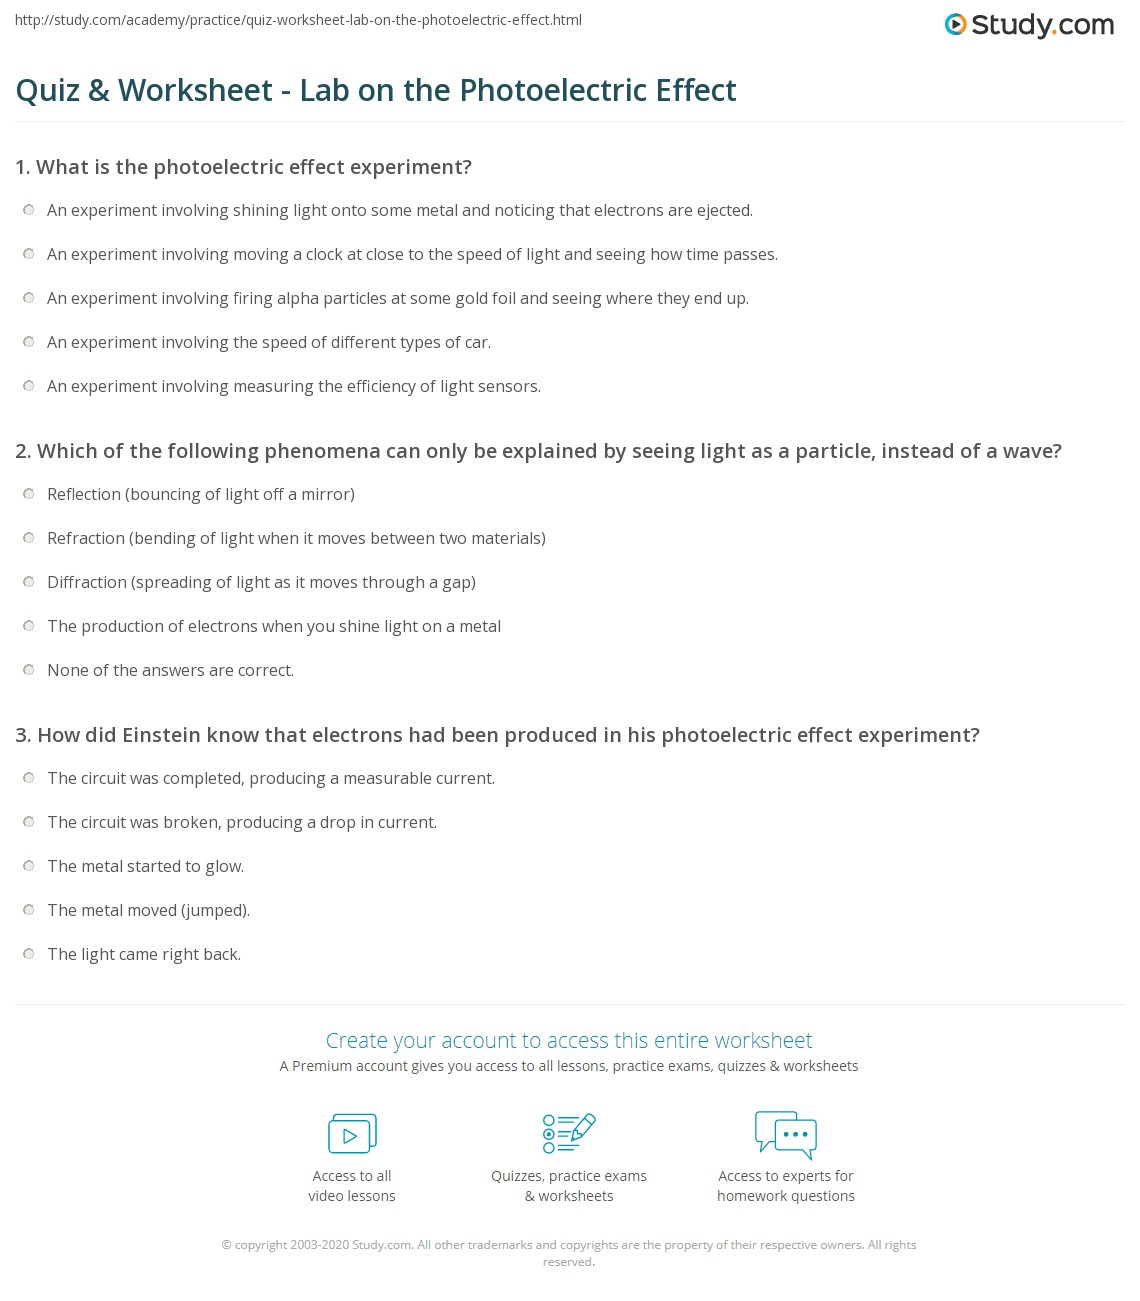 Quiz & Worksheet - Lab on the Photoelectric Effect | Study.com